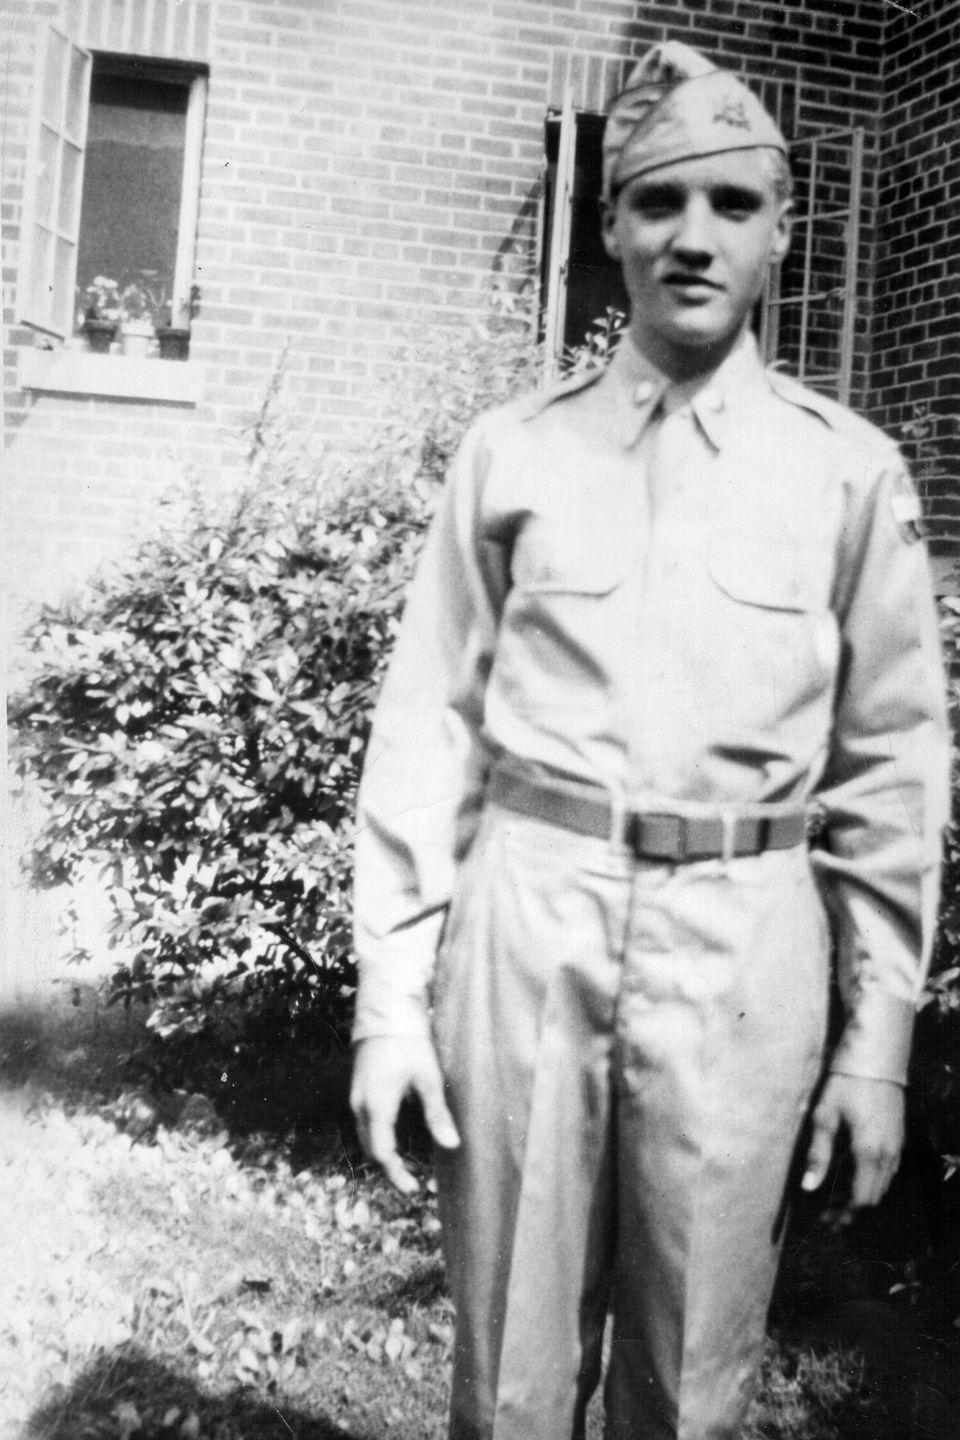 <p>In 1953, Presley graduated from Humes High School in Memphis, Tennessee. Here he is in his school's ROTC uniform. After graduating, he worked odd jobs to save enough money to record a demo.</p>